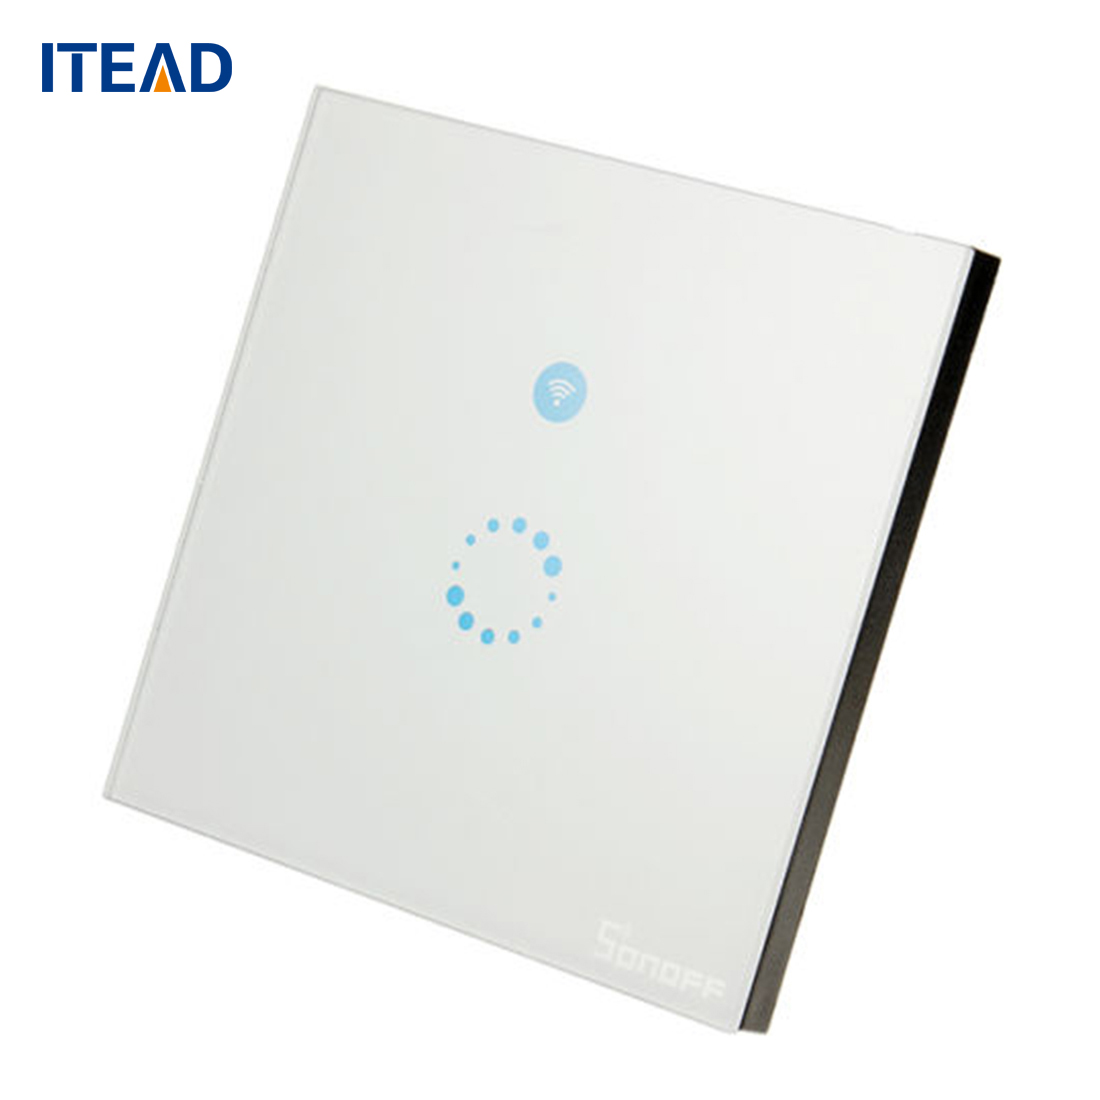 ITEAD Sonoff EU/US Plug Wifi Wireless Touch Remote Control Tempered Glass Switch Panel LED Light Wall Switch itead sonoff touch switch eu us standard 1gang 1 way crystal glass wall touch switch remote control light switch for smart hom